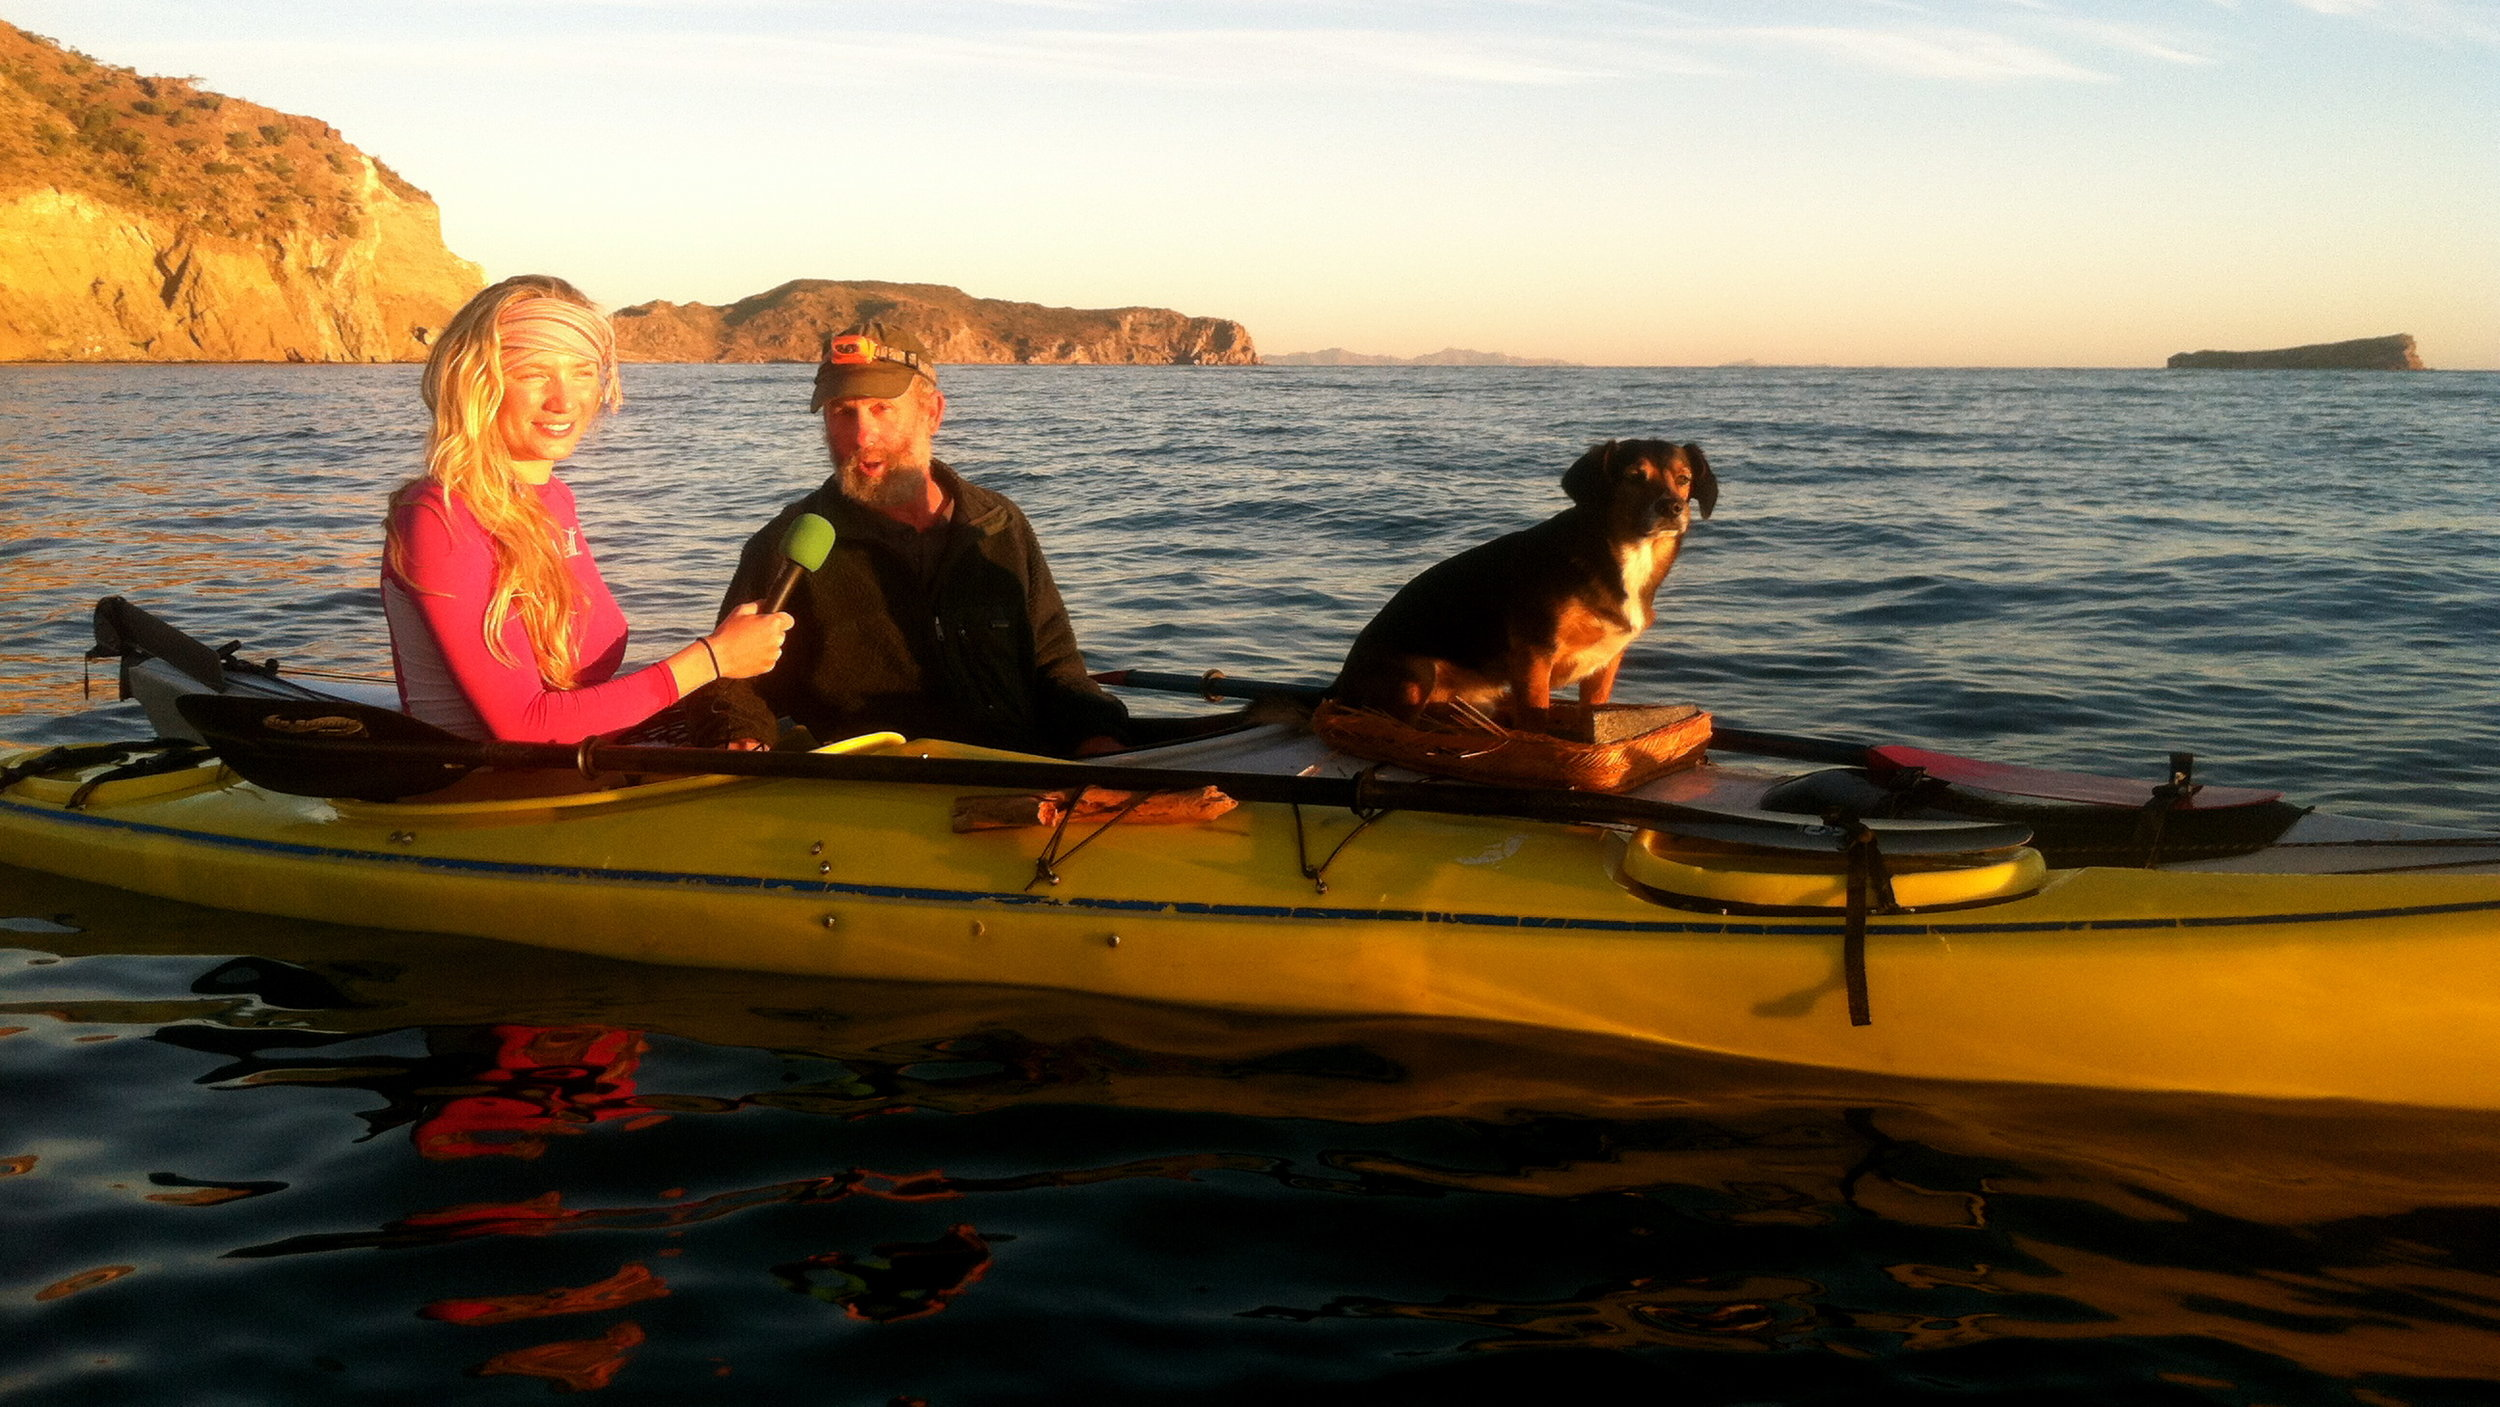 After paddling out into the Sea of Cortez before sunrise, Mandela interviews her mentor, Gary Steele.